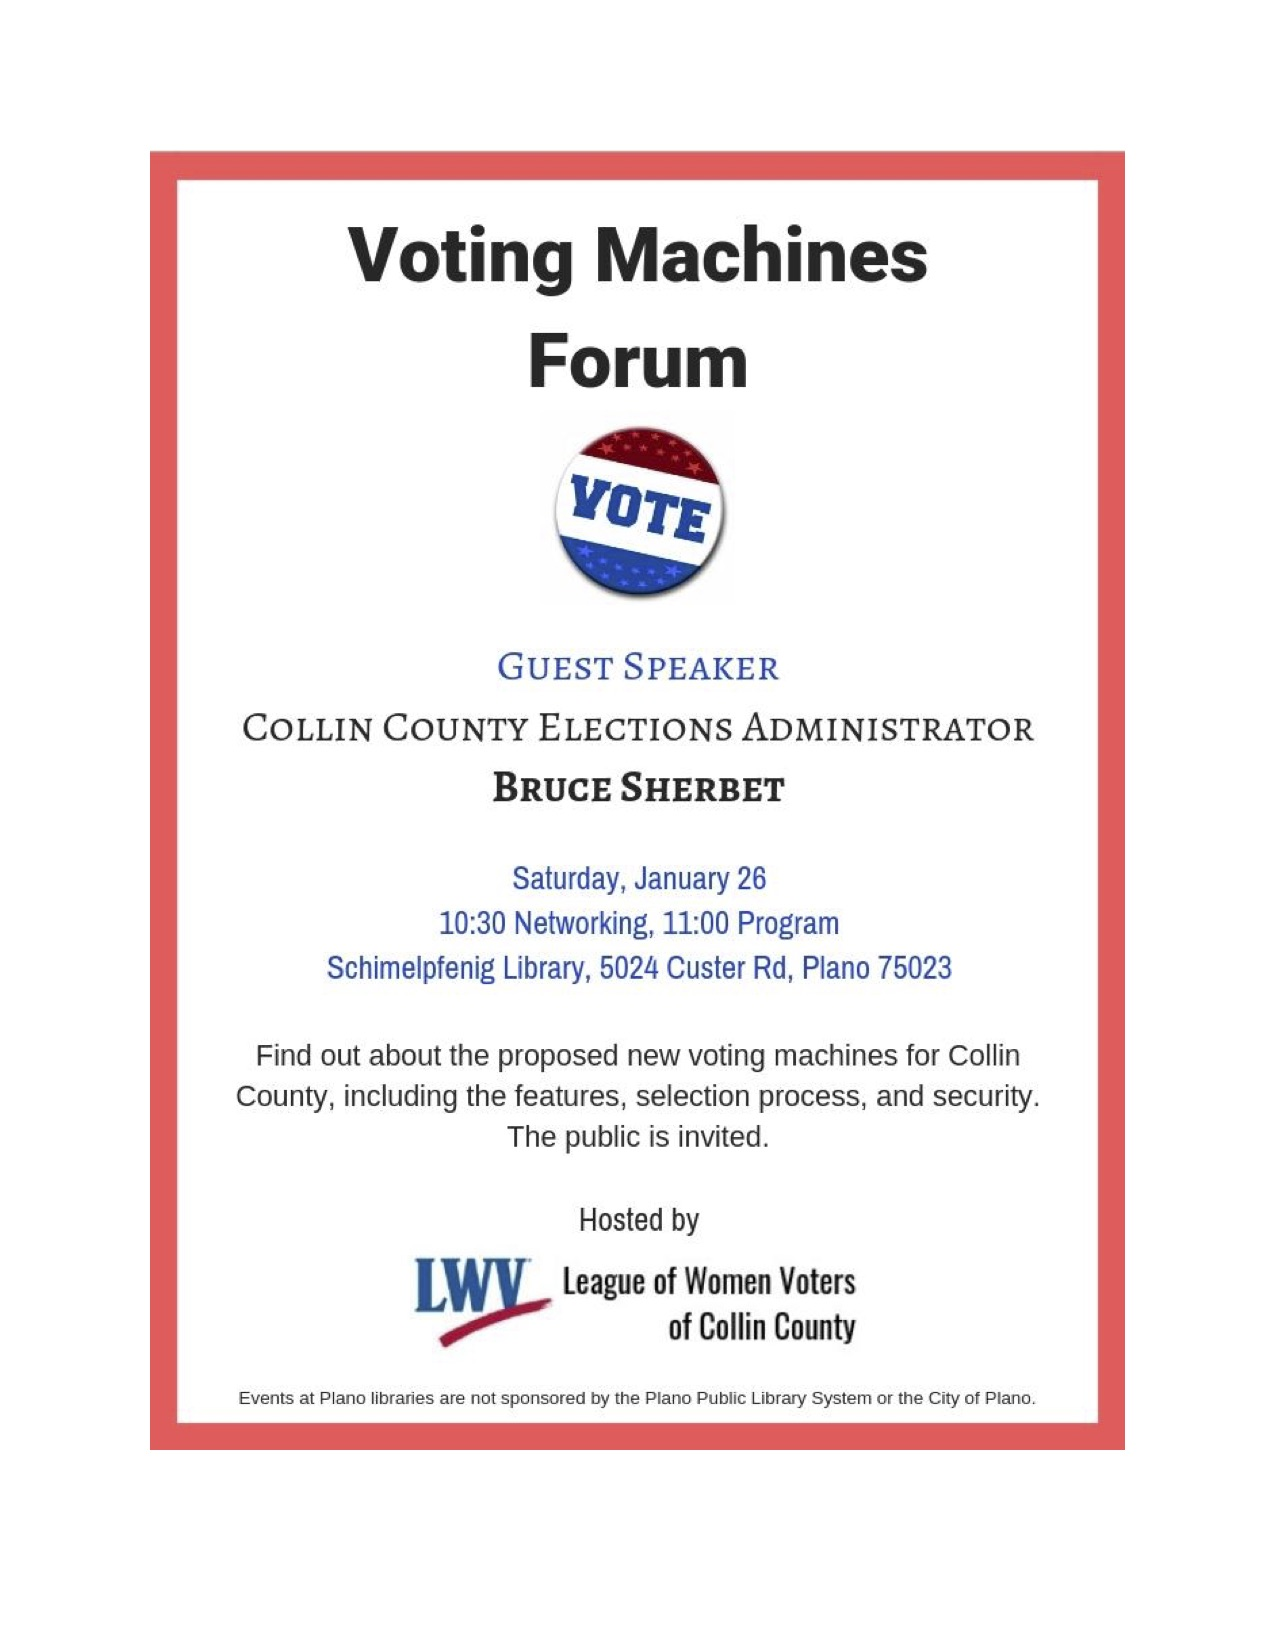 flyer_voting_machines_forum.jpg